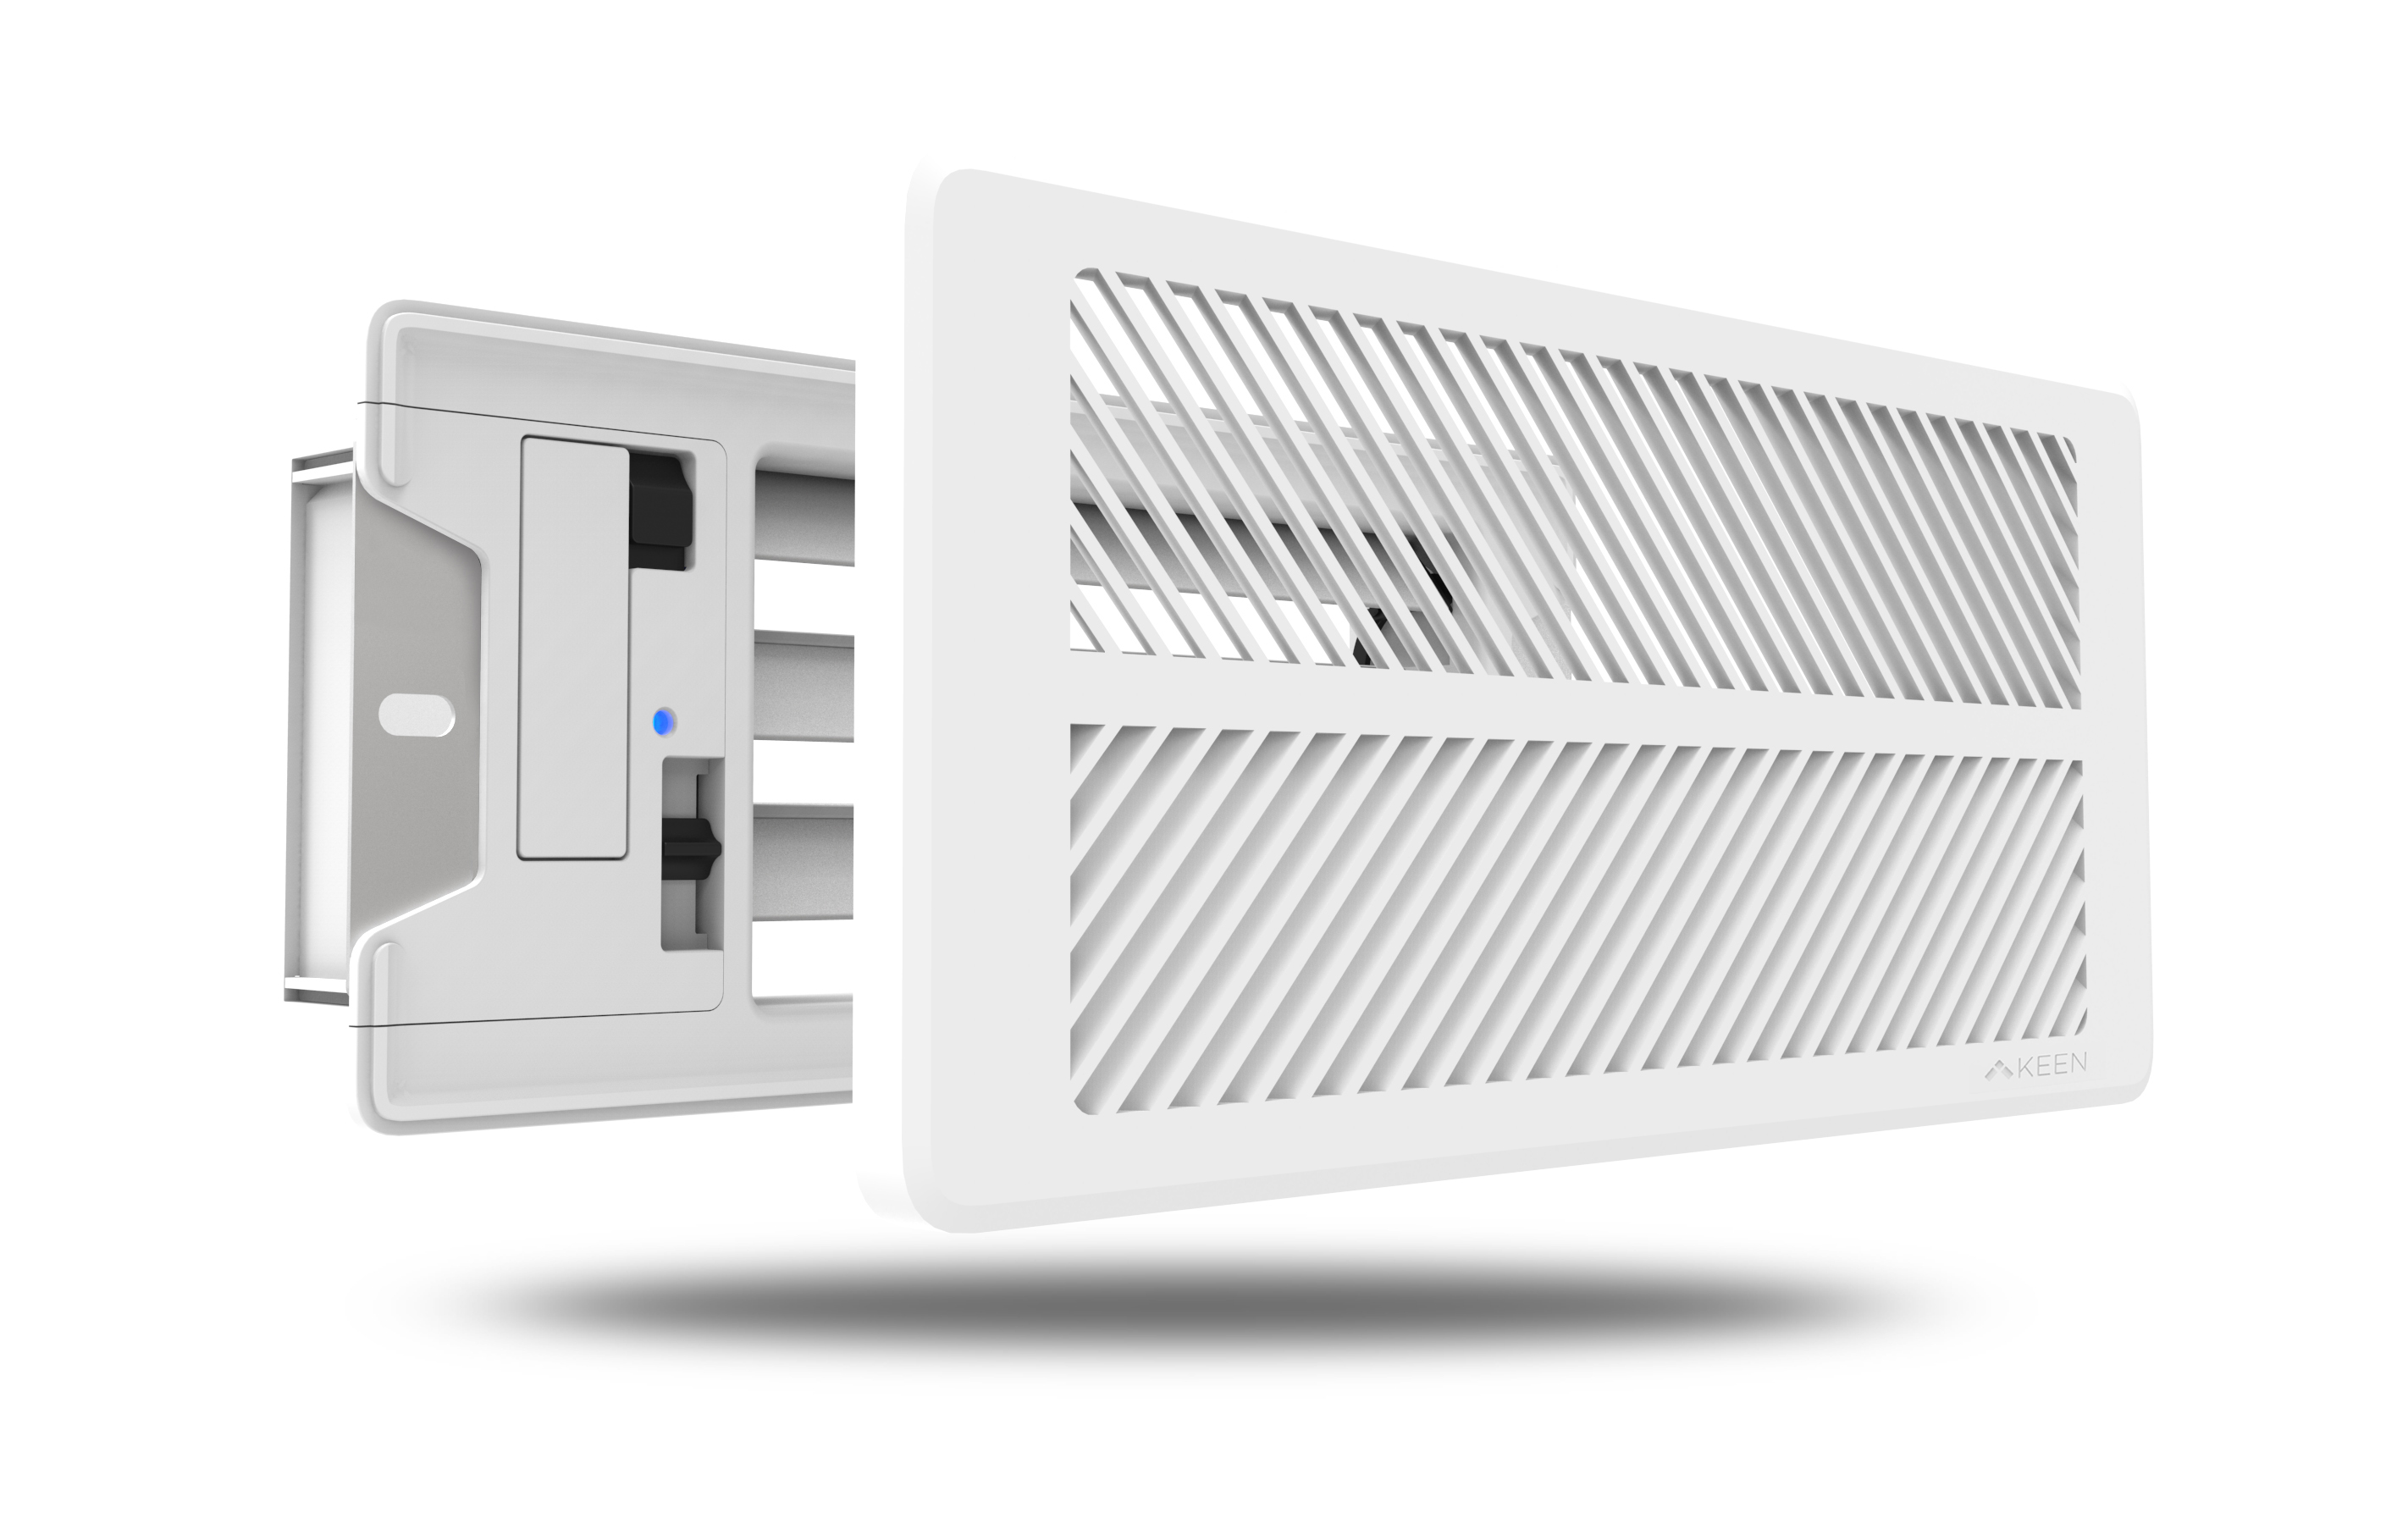 3/4 view of the Keen Home Smart Vent